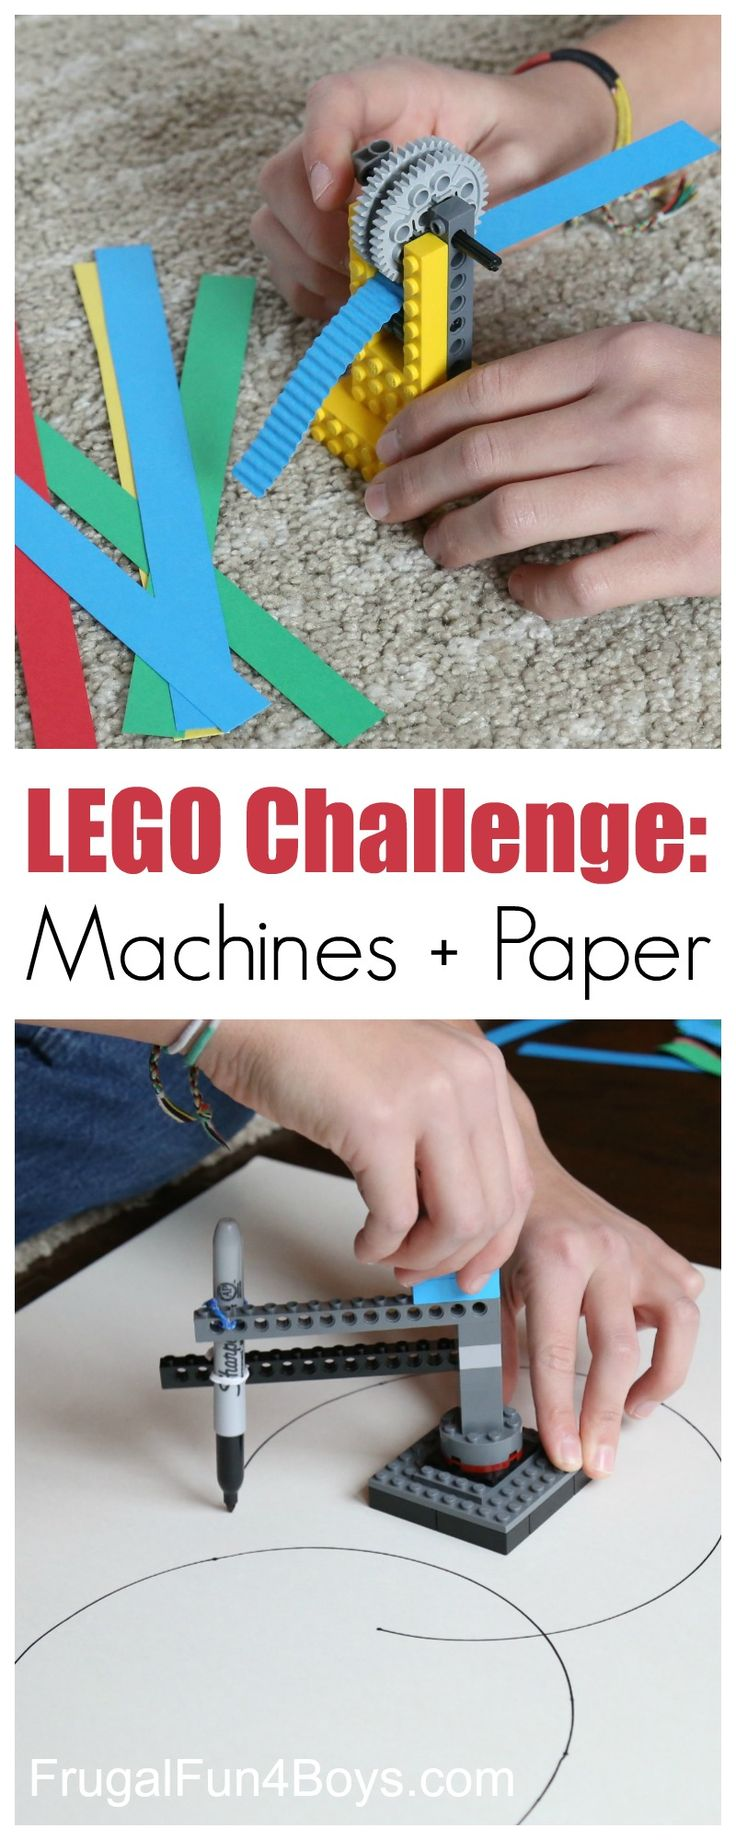 LEGO Building Challenge: Machines + Paper.  How to build a working LEGO paper crimper and a machine that draws circles.  Great